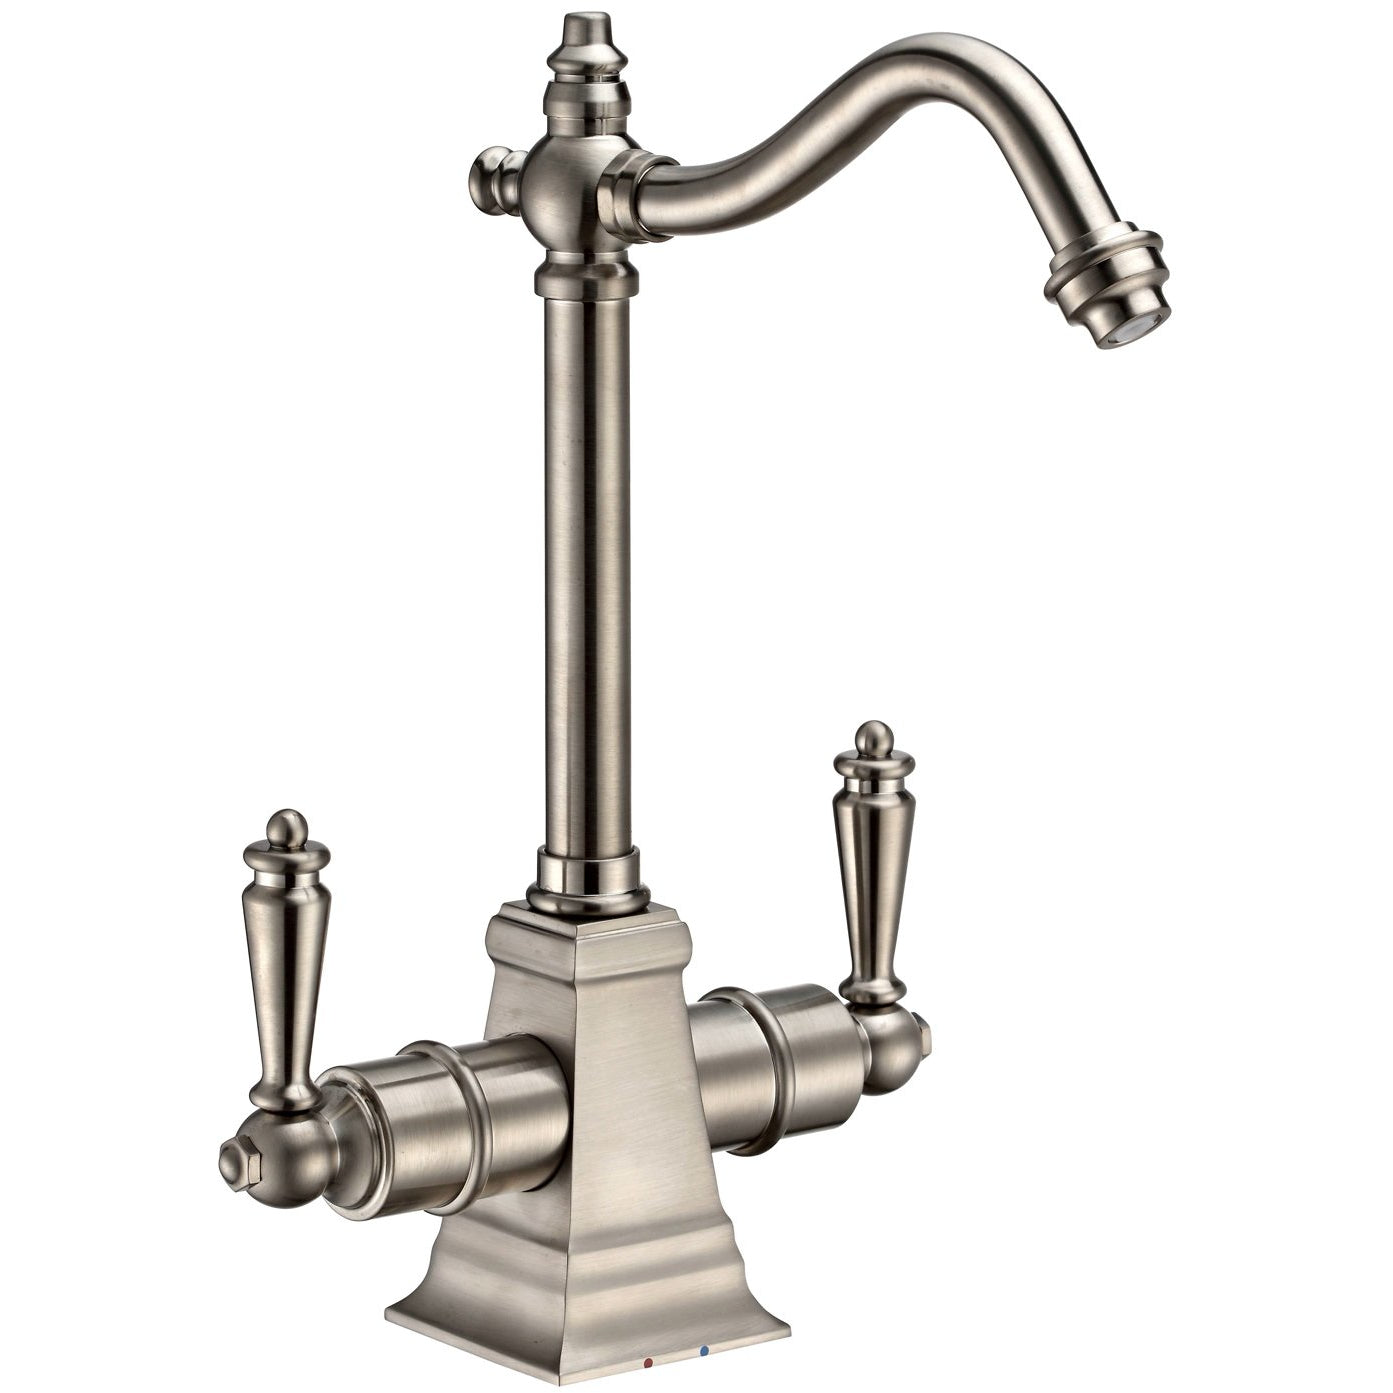 Whitehaus Point of Use Instant Hot/Cold Water Drinking Faucet with Traditional Swivel Spout